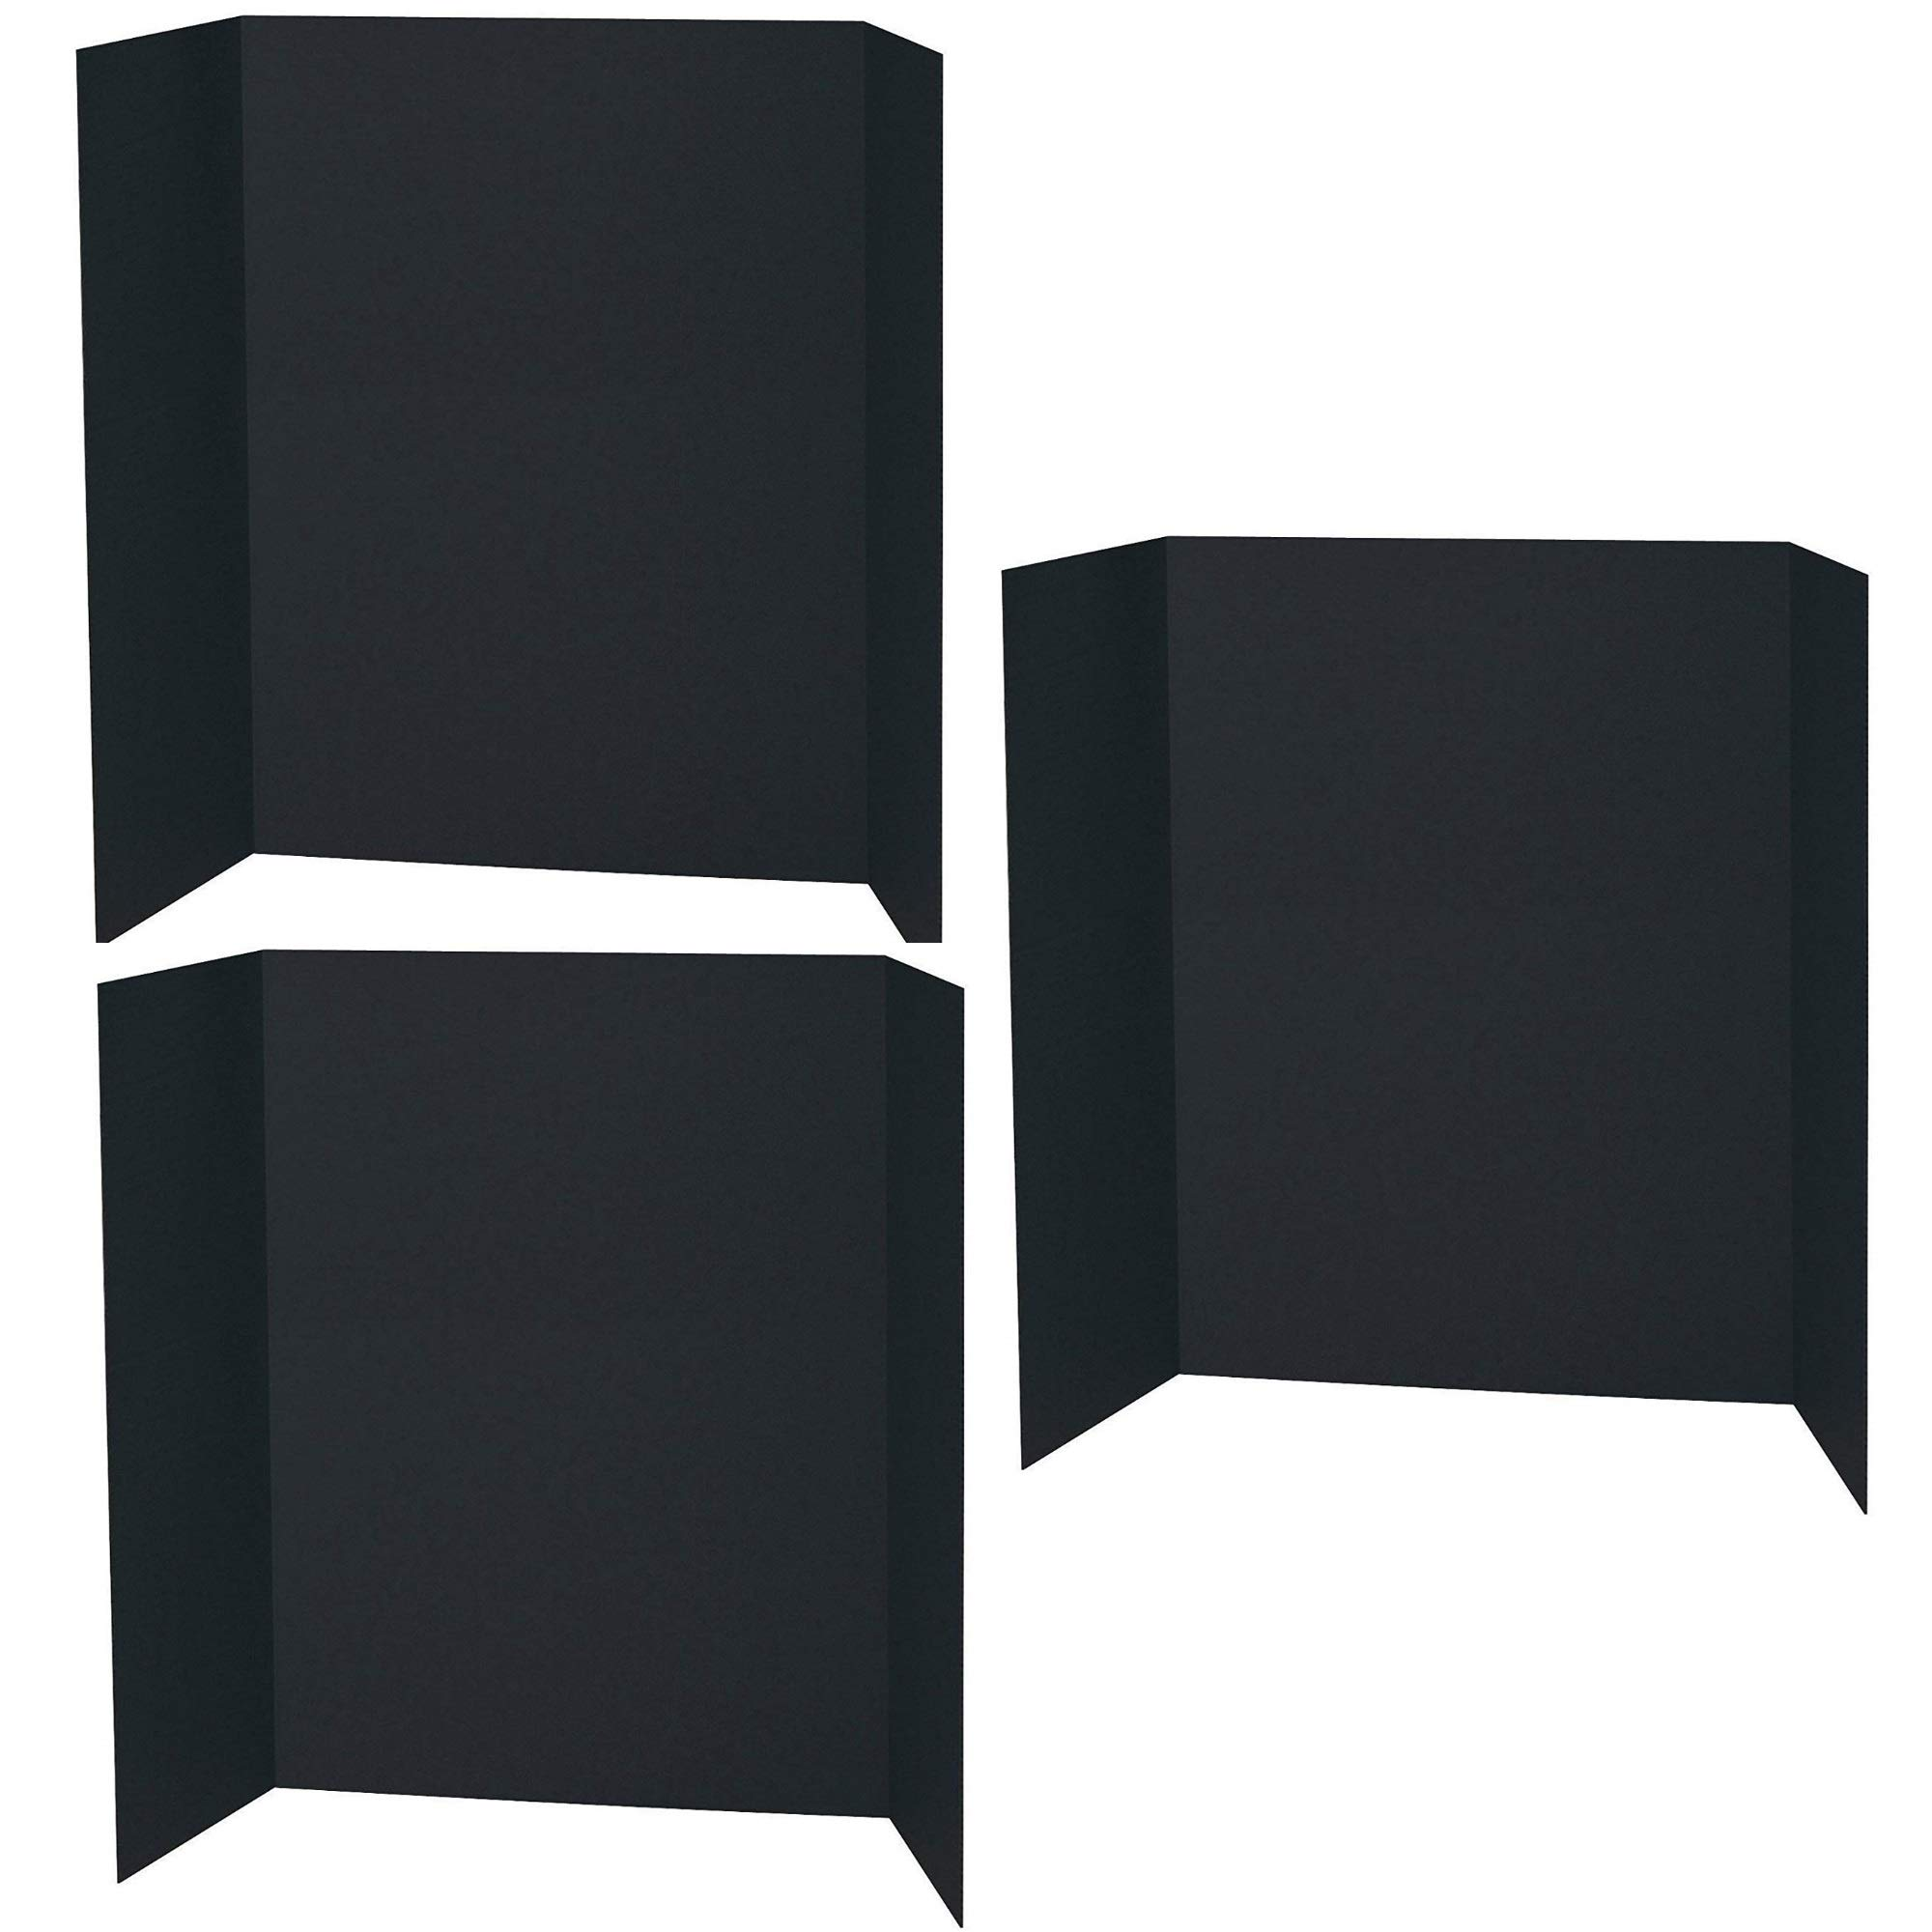 Spotlight Display Board - 48 x 36 Inches - 1 Ply Black, 3 Pack